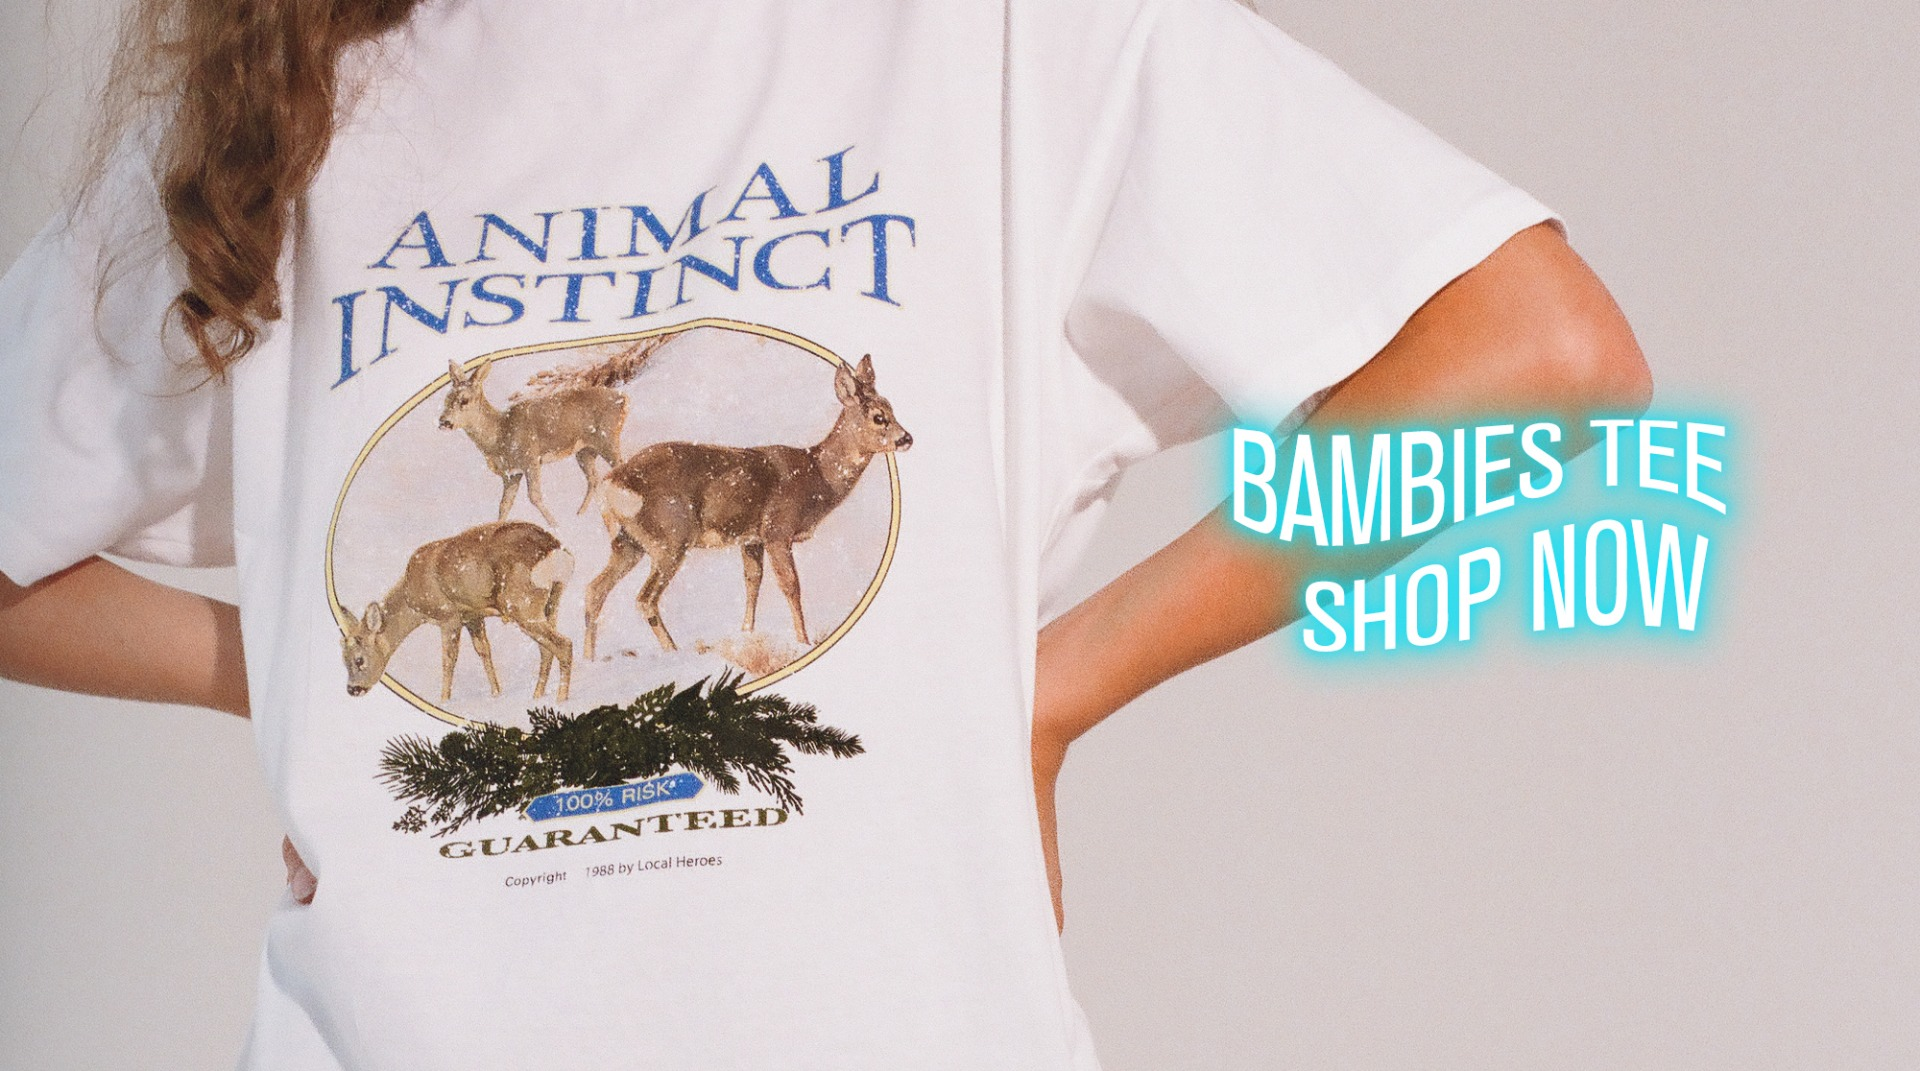 LH Bambies Tee